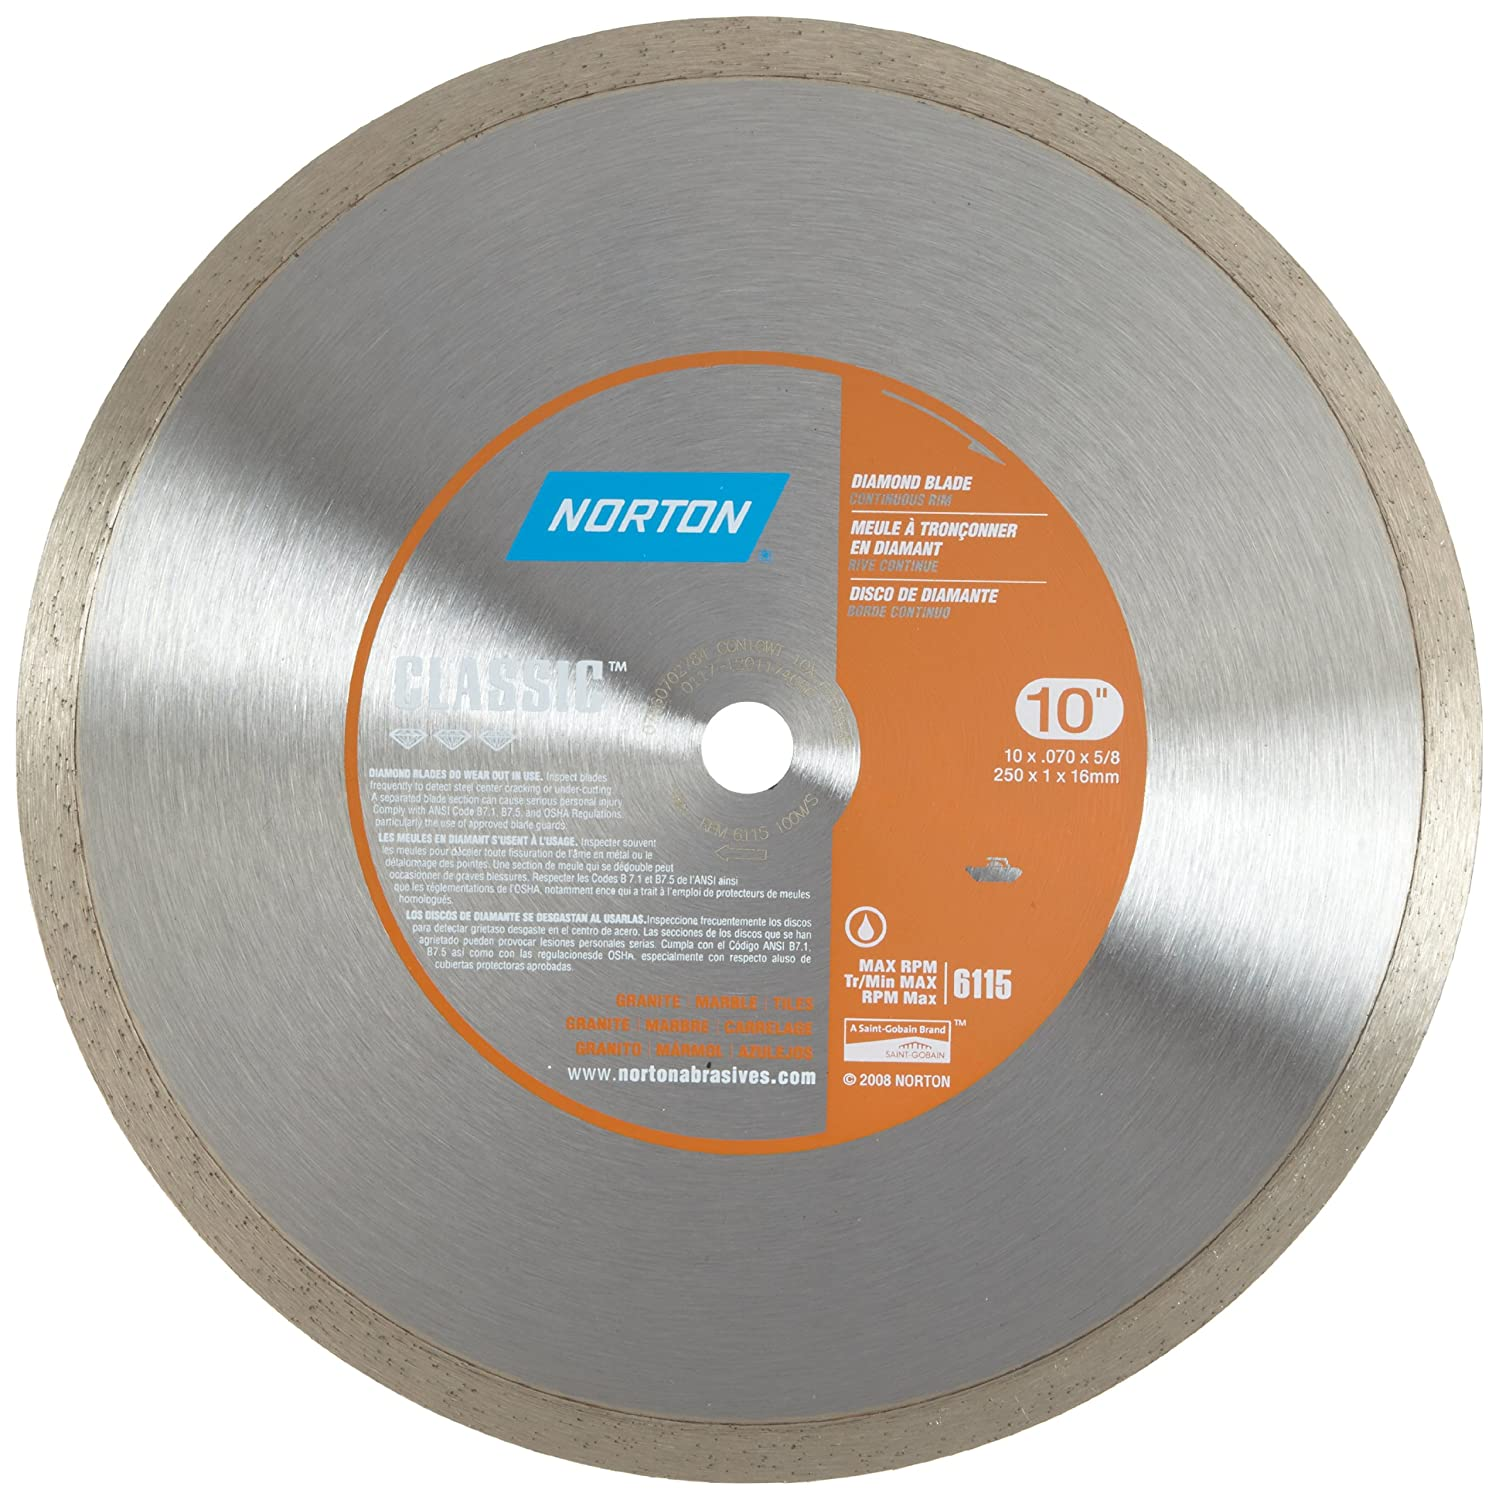 Norton 2784 10 inch dry or wet cutting continuous rim diamond saw norton 2784 10 inch dry or wet cutting continuous rim diamond saw blade with 58 inch arbor for tile diamond saw blade with 58 inch arbor for tile greentooth Images